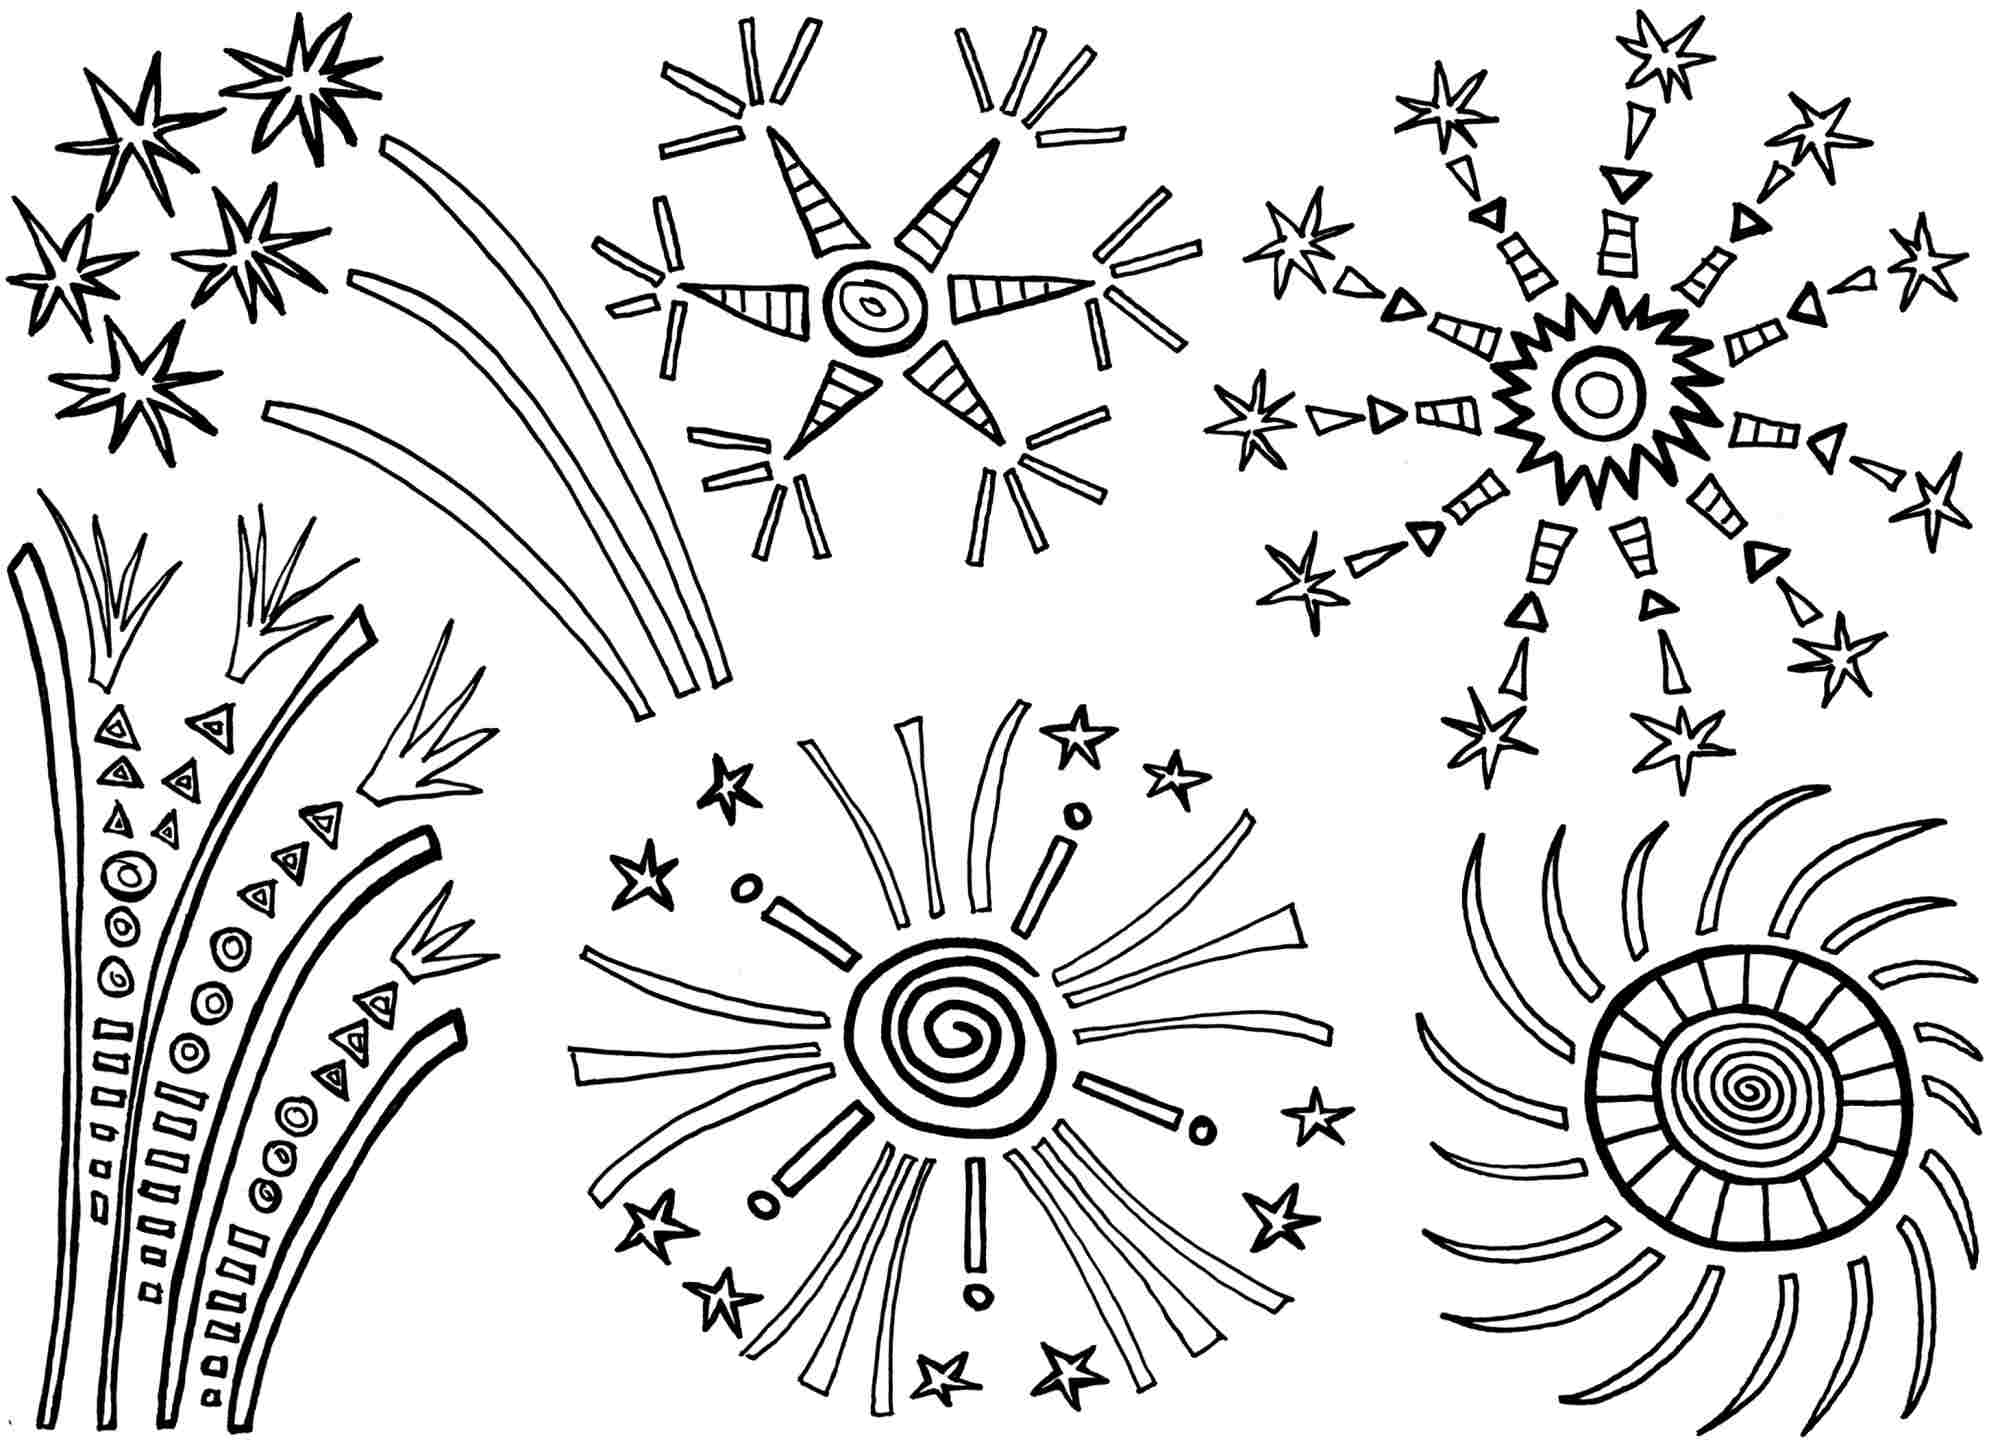 printable fireworks coloring pages free printable fireworks coloring pages for kids coloring printable fireworks pages